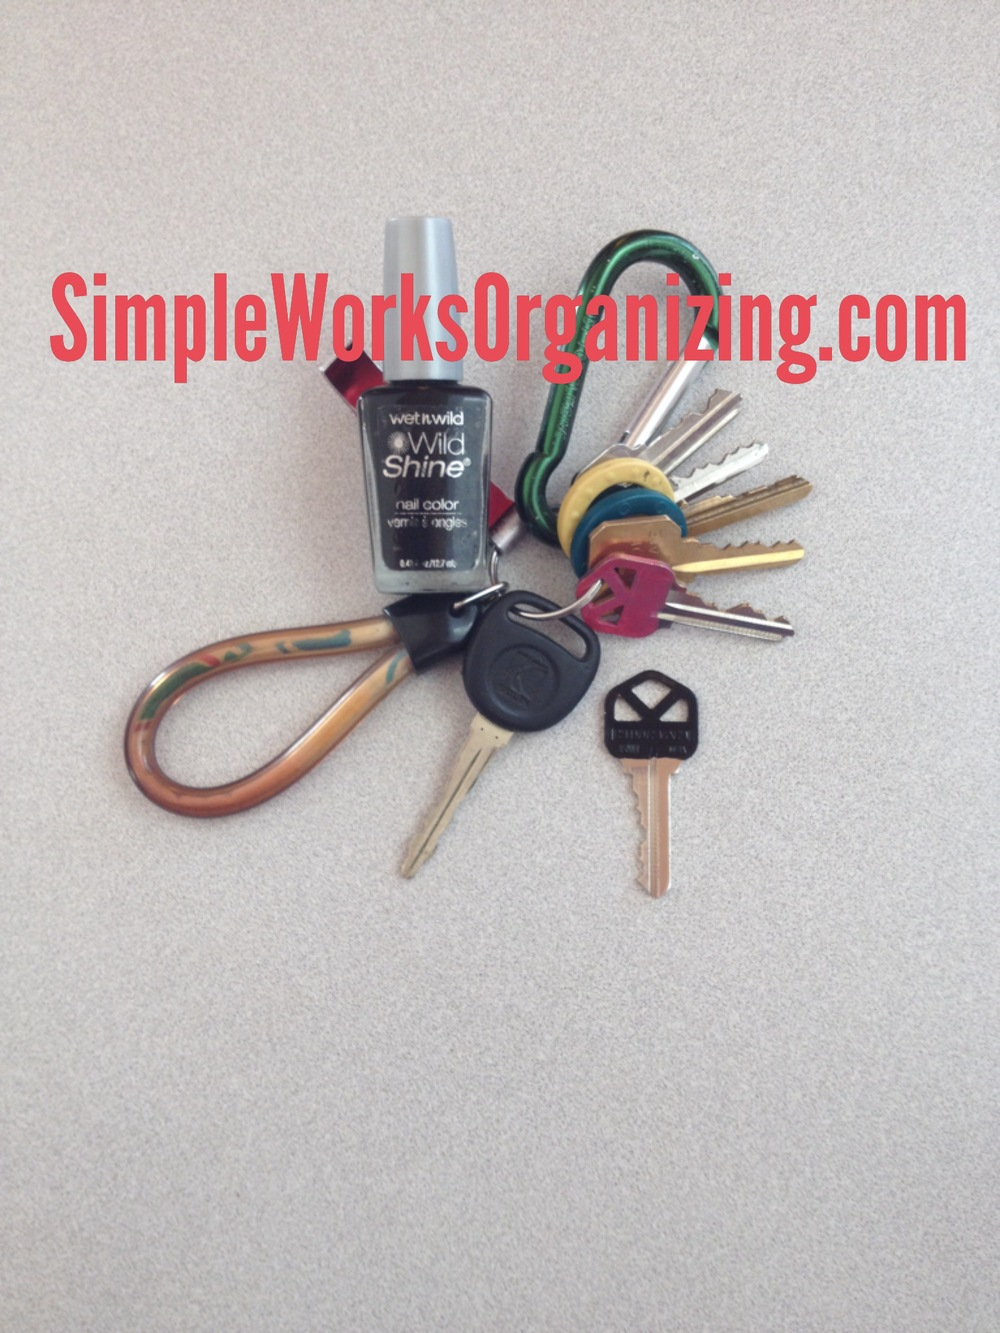 Easy - Do-It-Yourself fix to labeling keys!